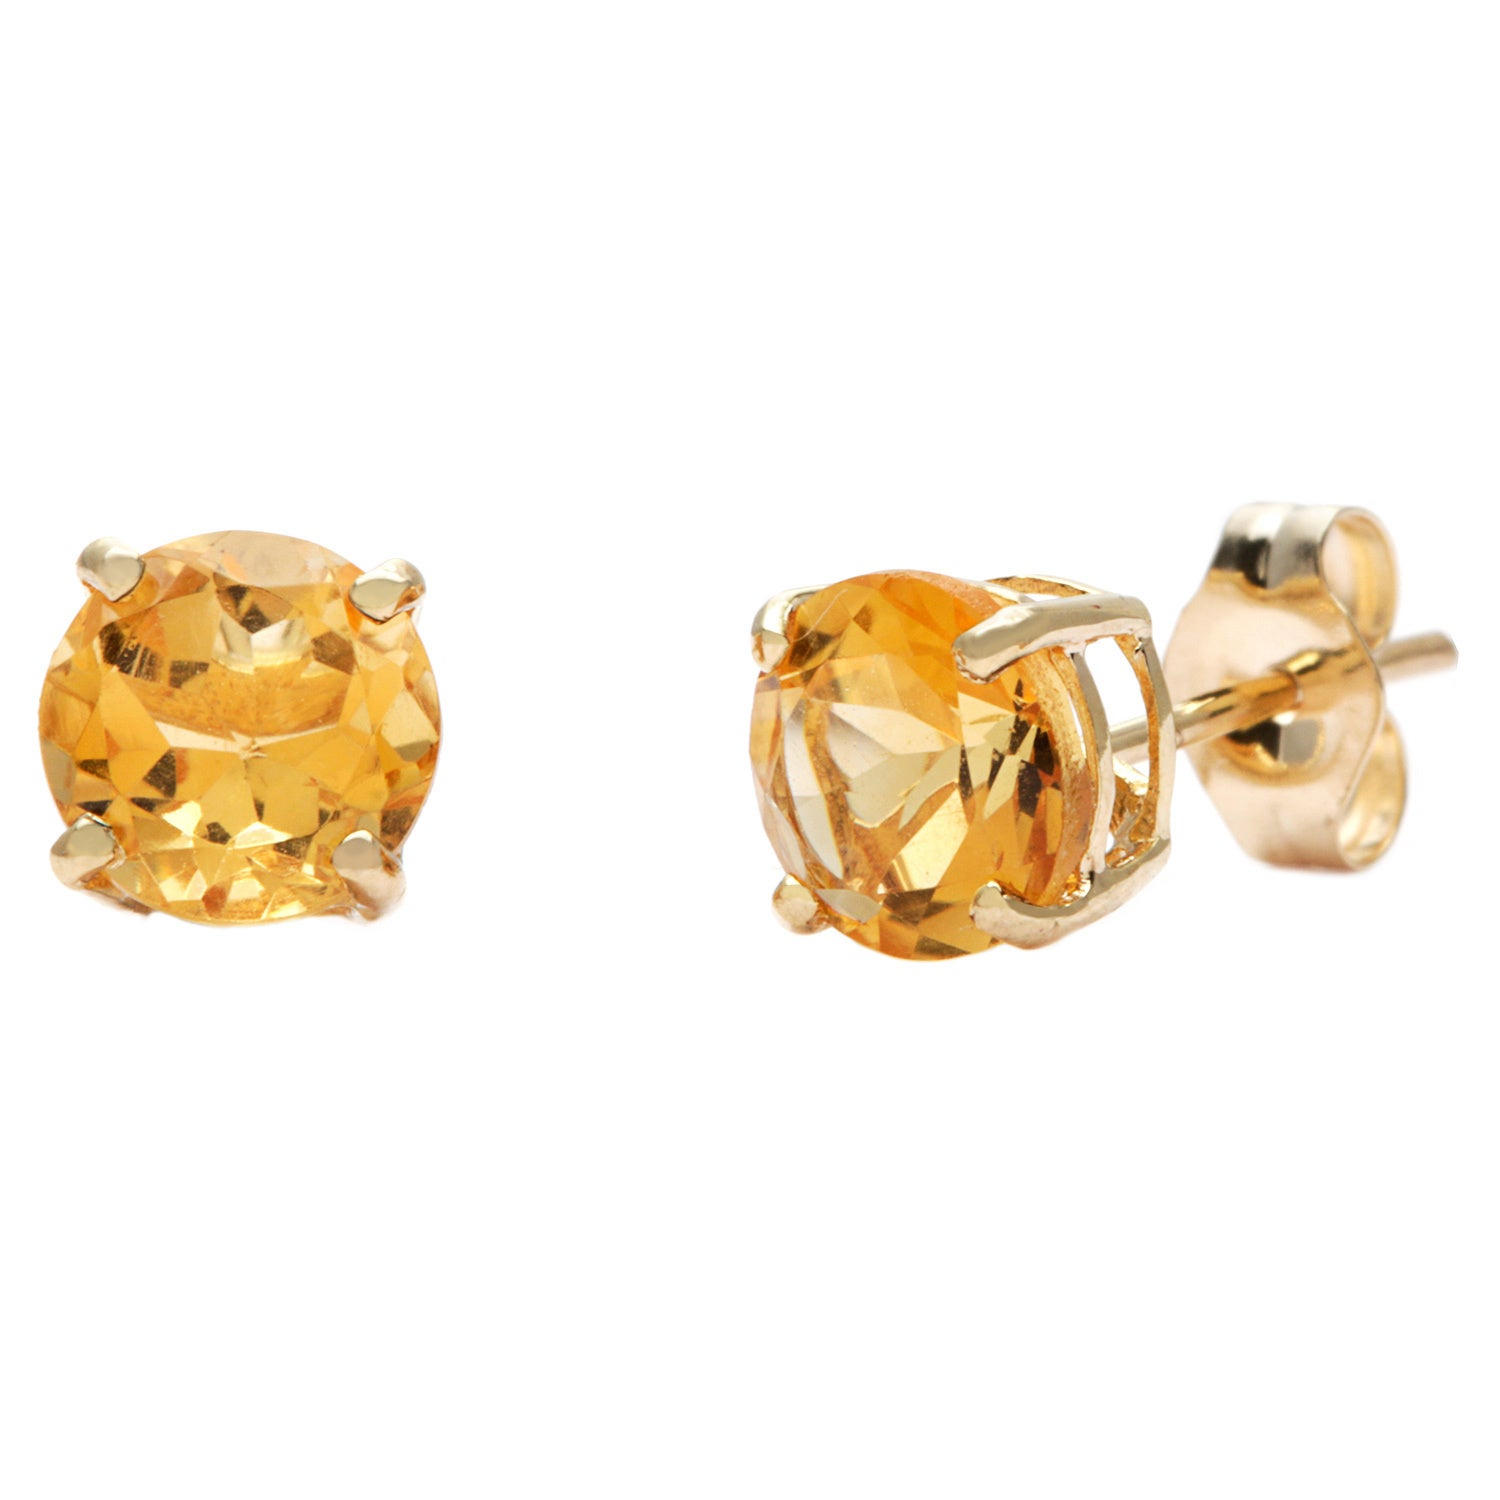 jewellery grace kiki earrings sloane stud citrine product mcdonough studs